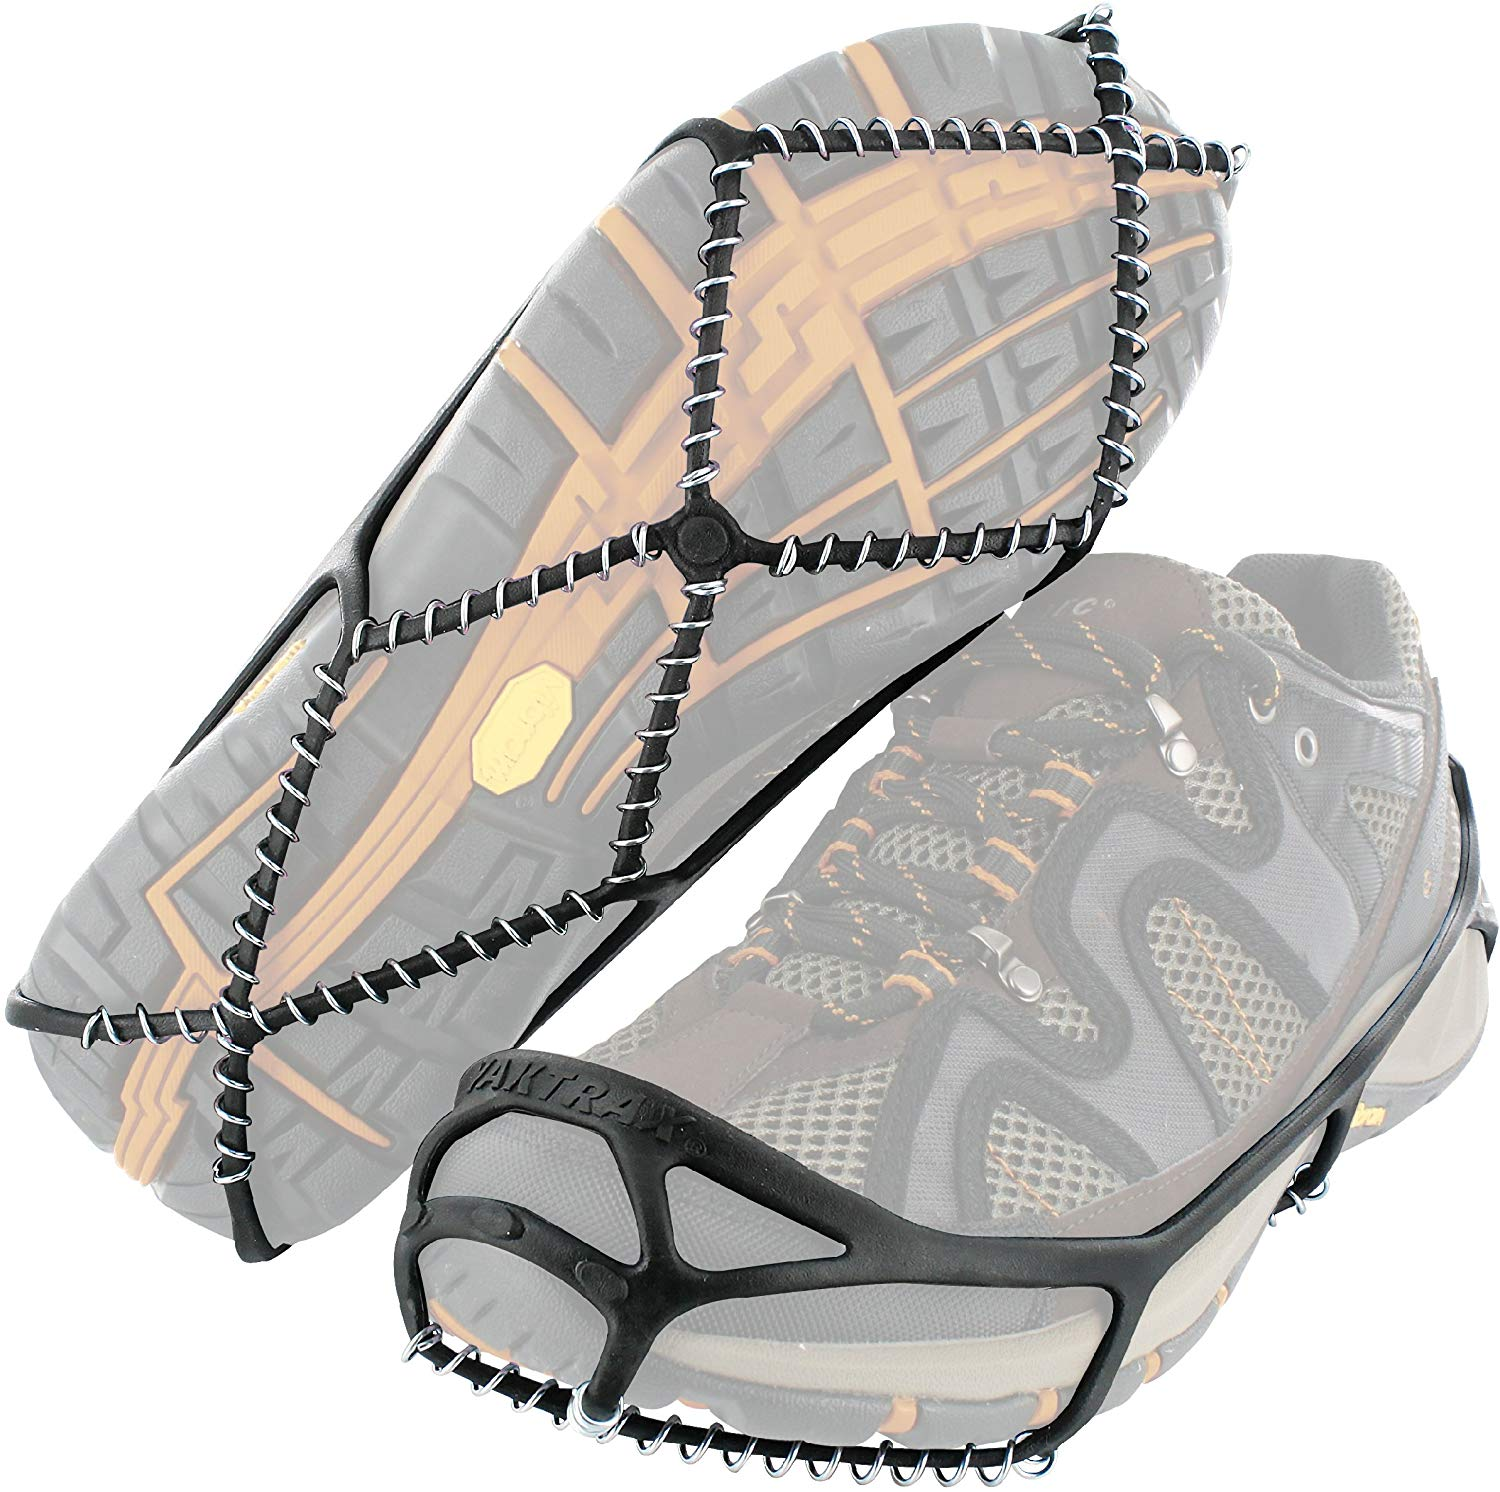 Yaktrax cleats